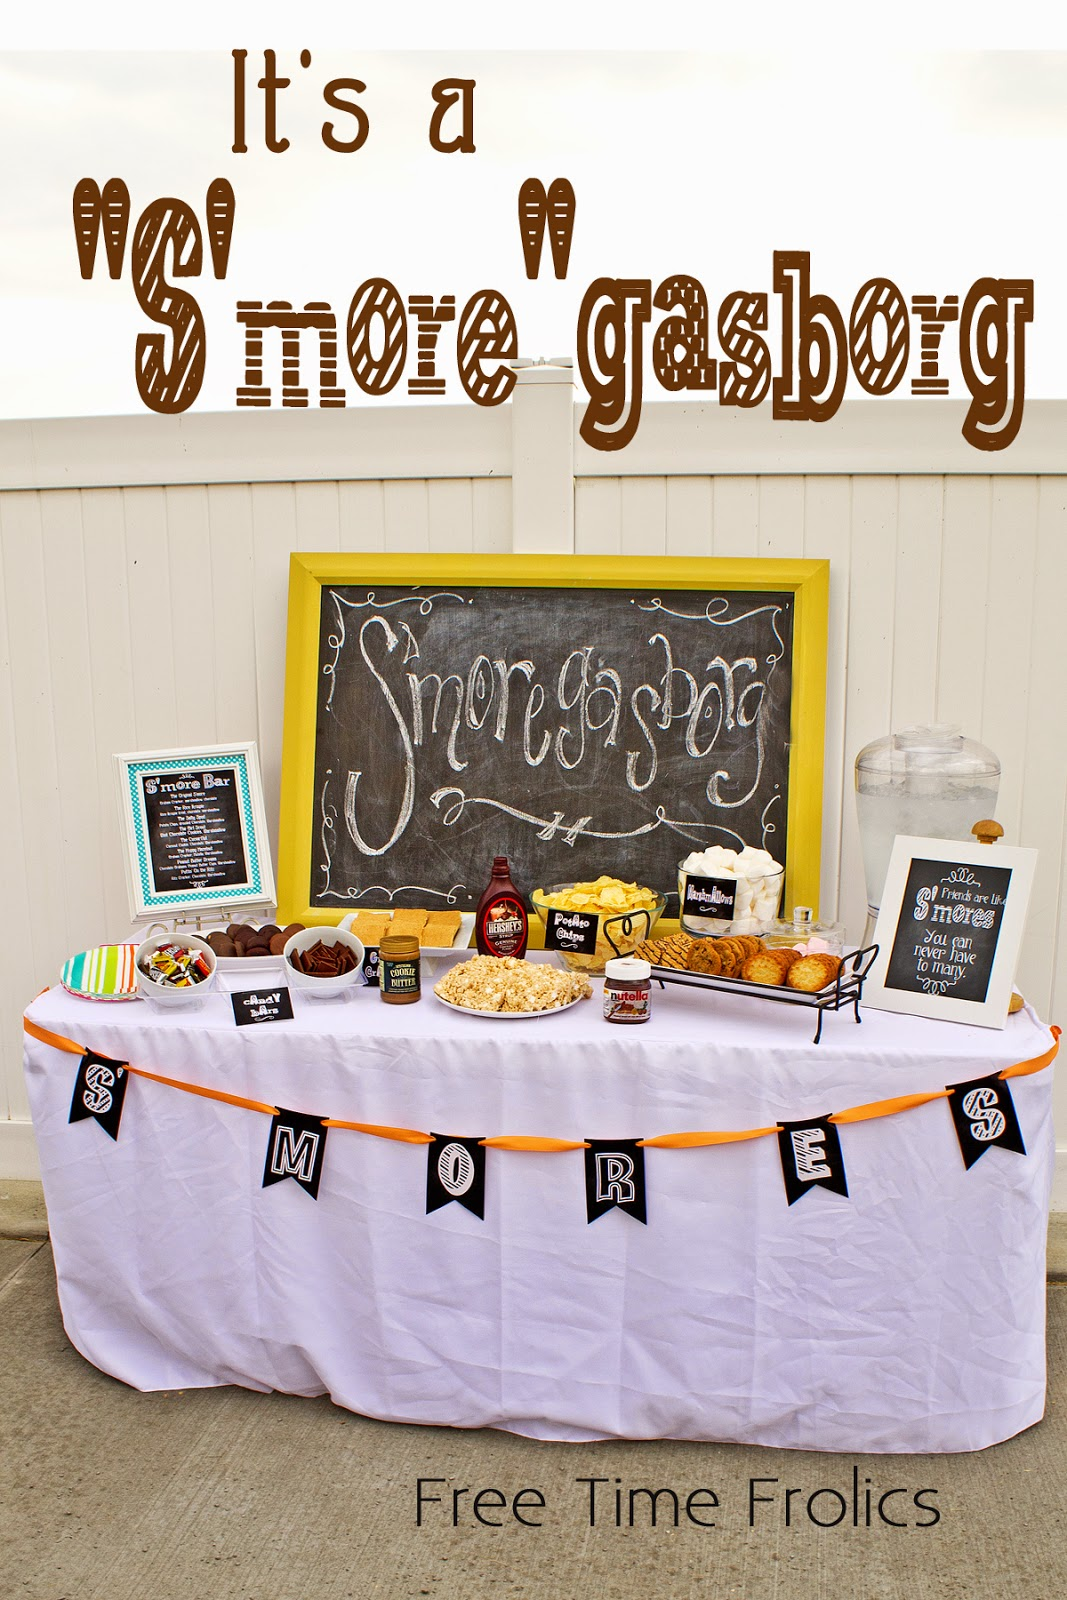 s'more party idea www.freetimefrolics.com #smores #printable